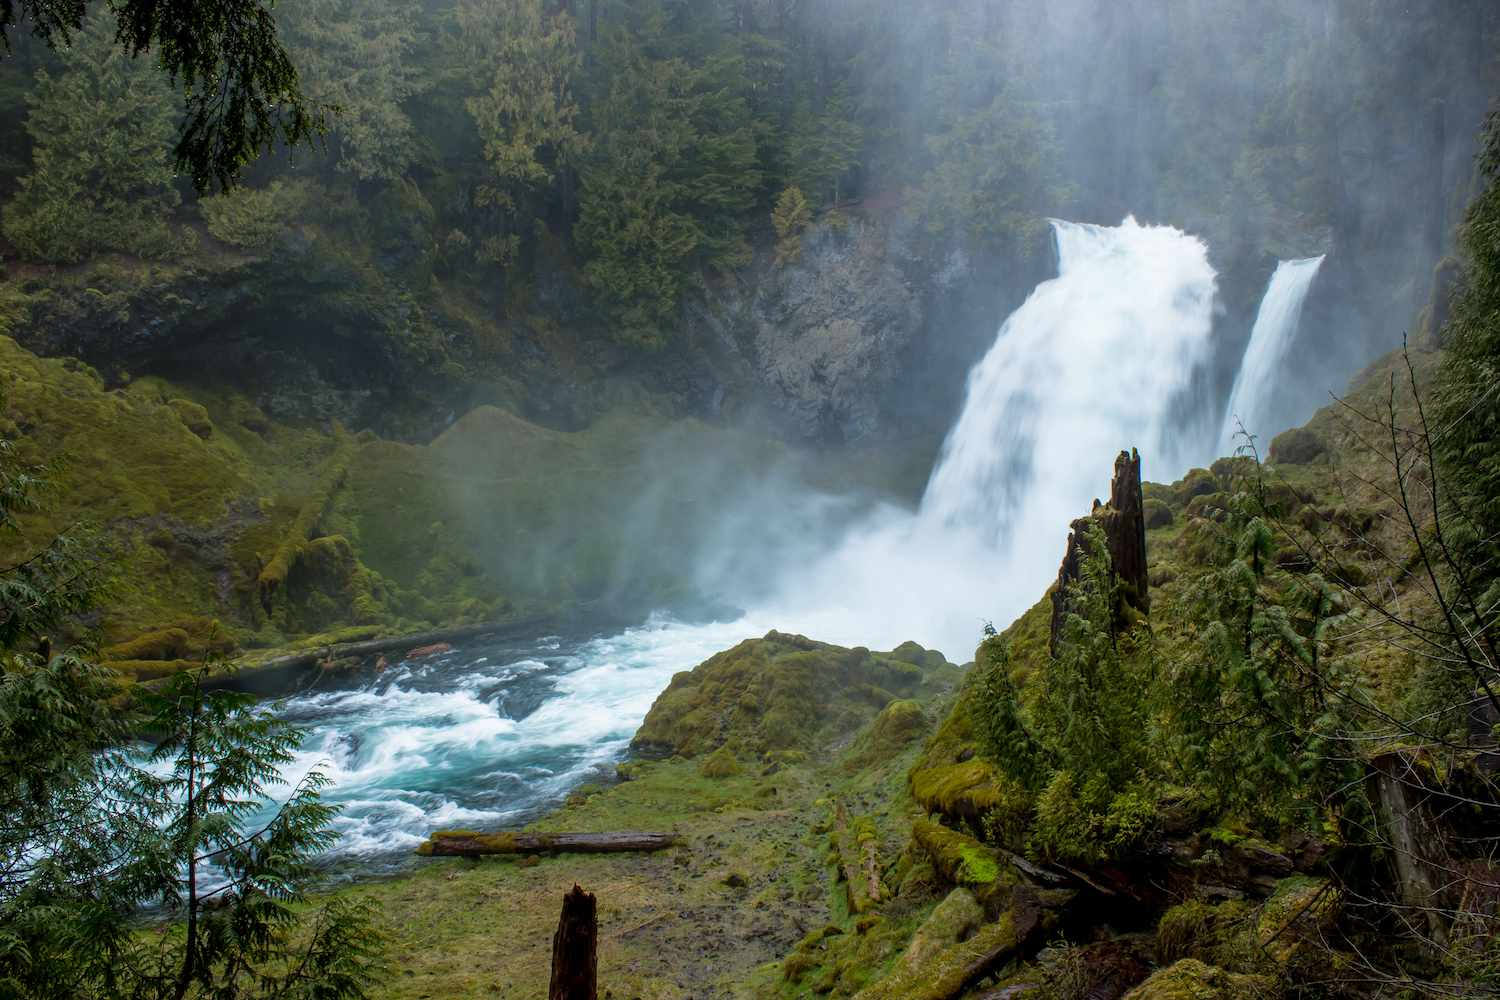 A roaring waterfall amidst the mossy green of a Eugene, Oregon forest